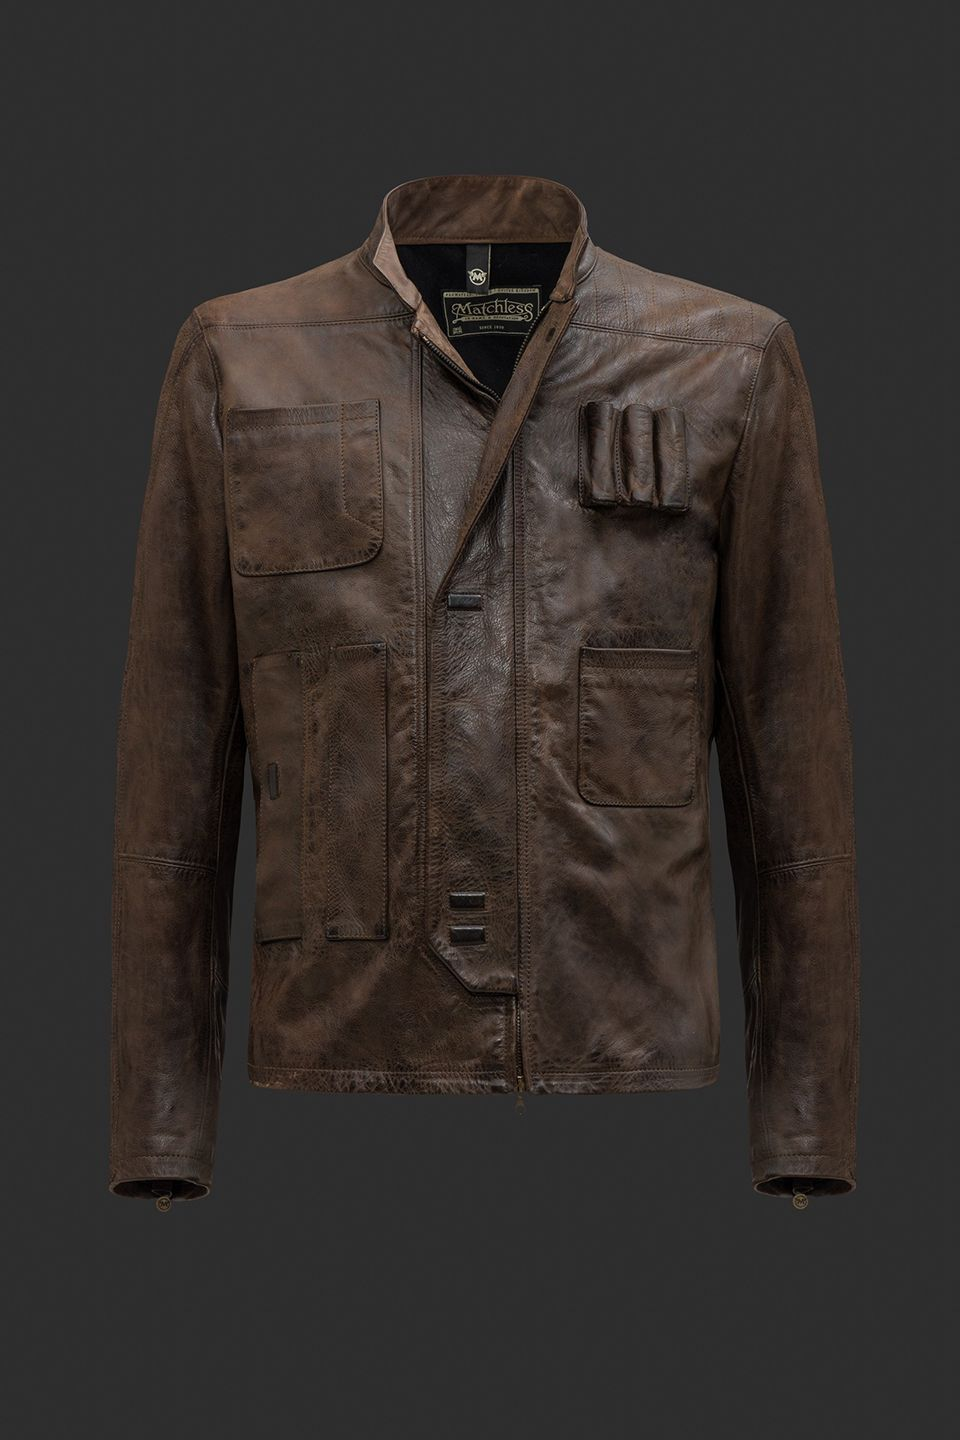 Matchless Han Solo Jacket Leather Jacket Han Solo Jacket Leather Jacket Men [ 1440 x 960 Pixel ]